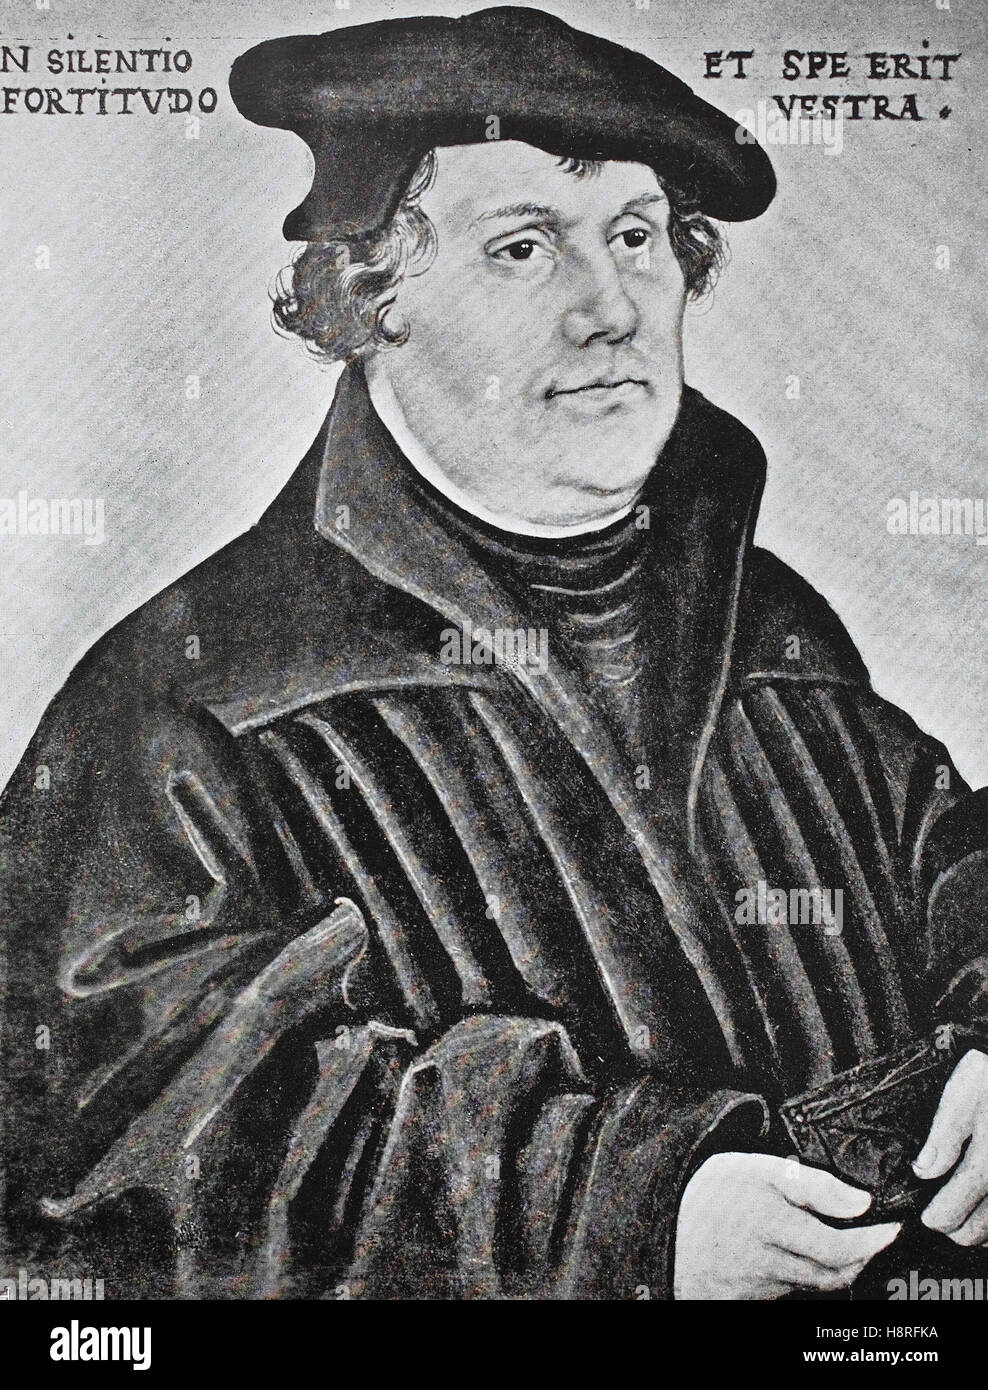 Martin Luther was a German professor of theology, composer, priest, monk and a seminal figure in the Protestant - Stock Image